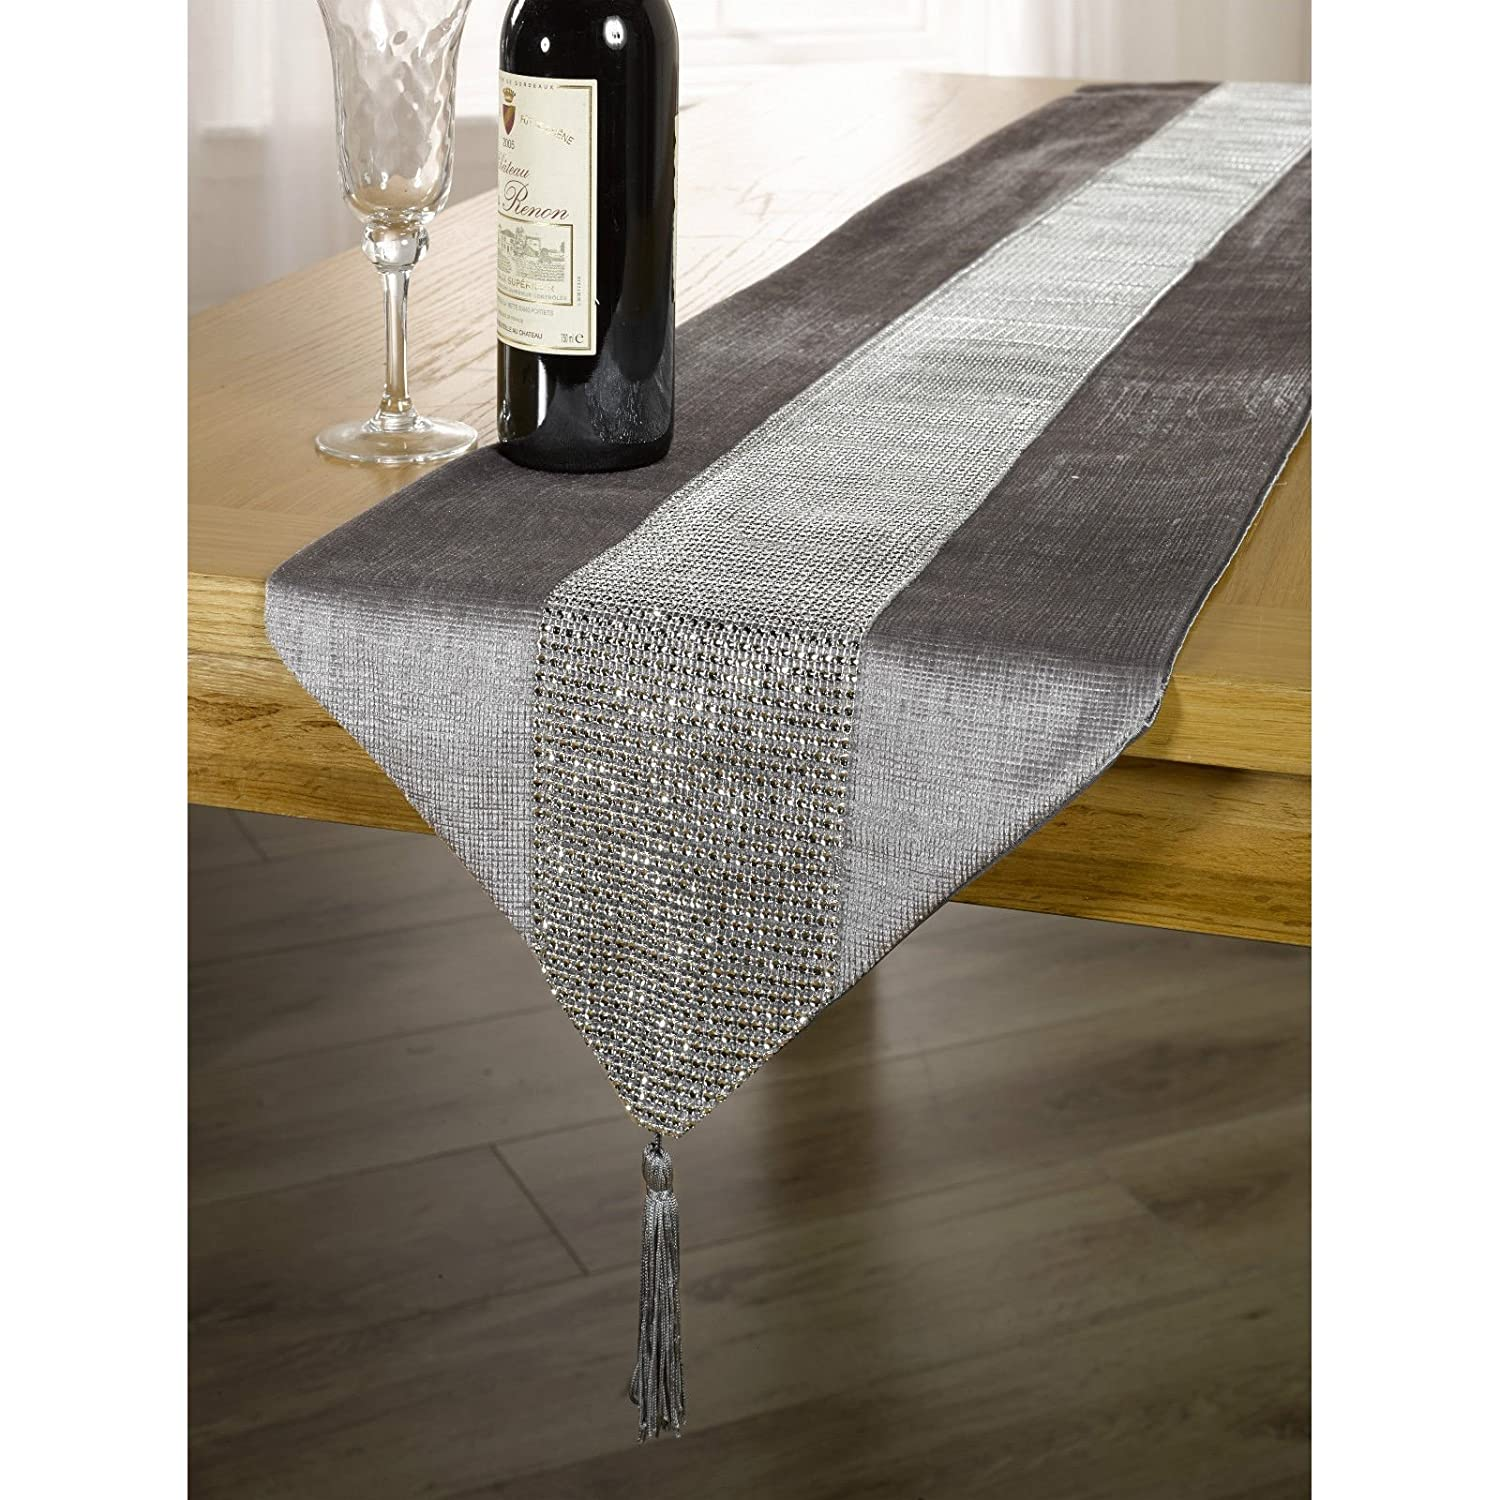 Panache Coloured Table Runner with Diamante Strip and Tassels (13inch x 72inch) (White) UTMS151_9